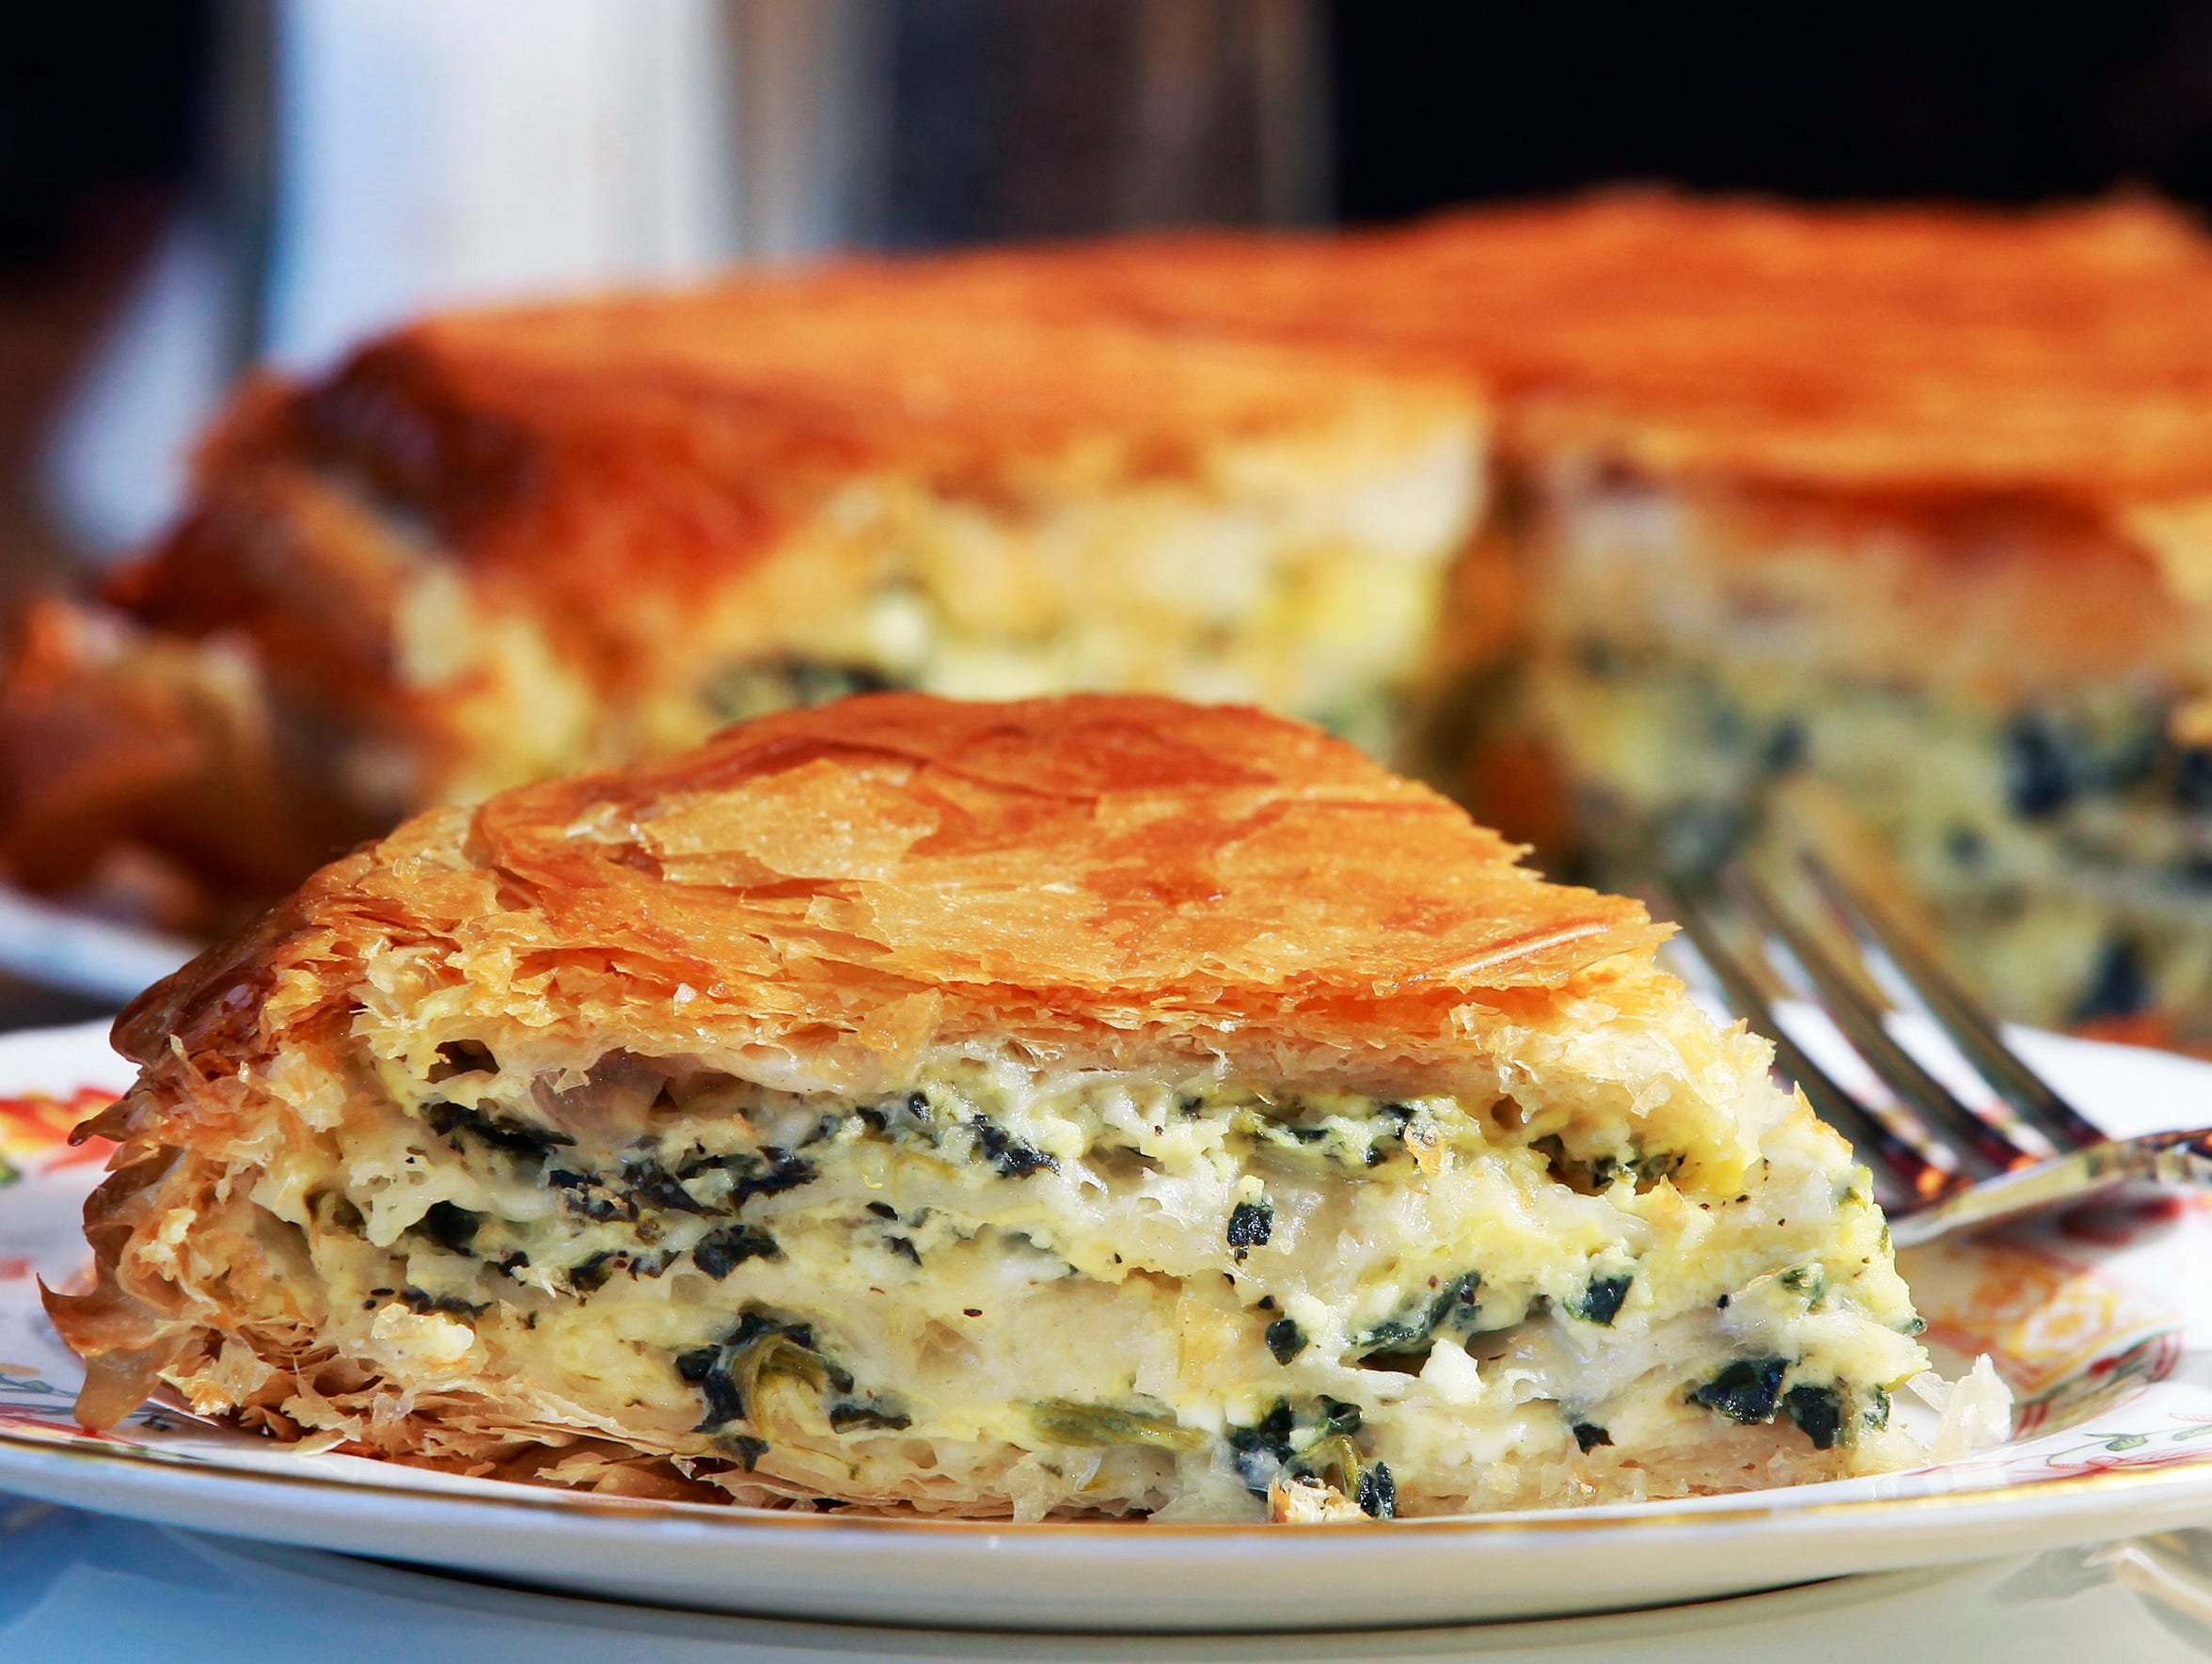 Spinach burek, spinach and cheese wrapped in buttery